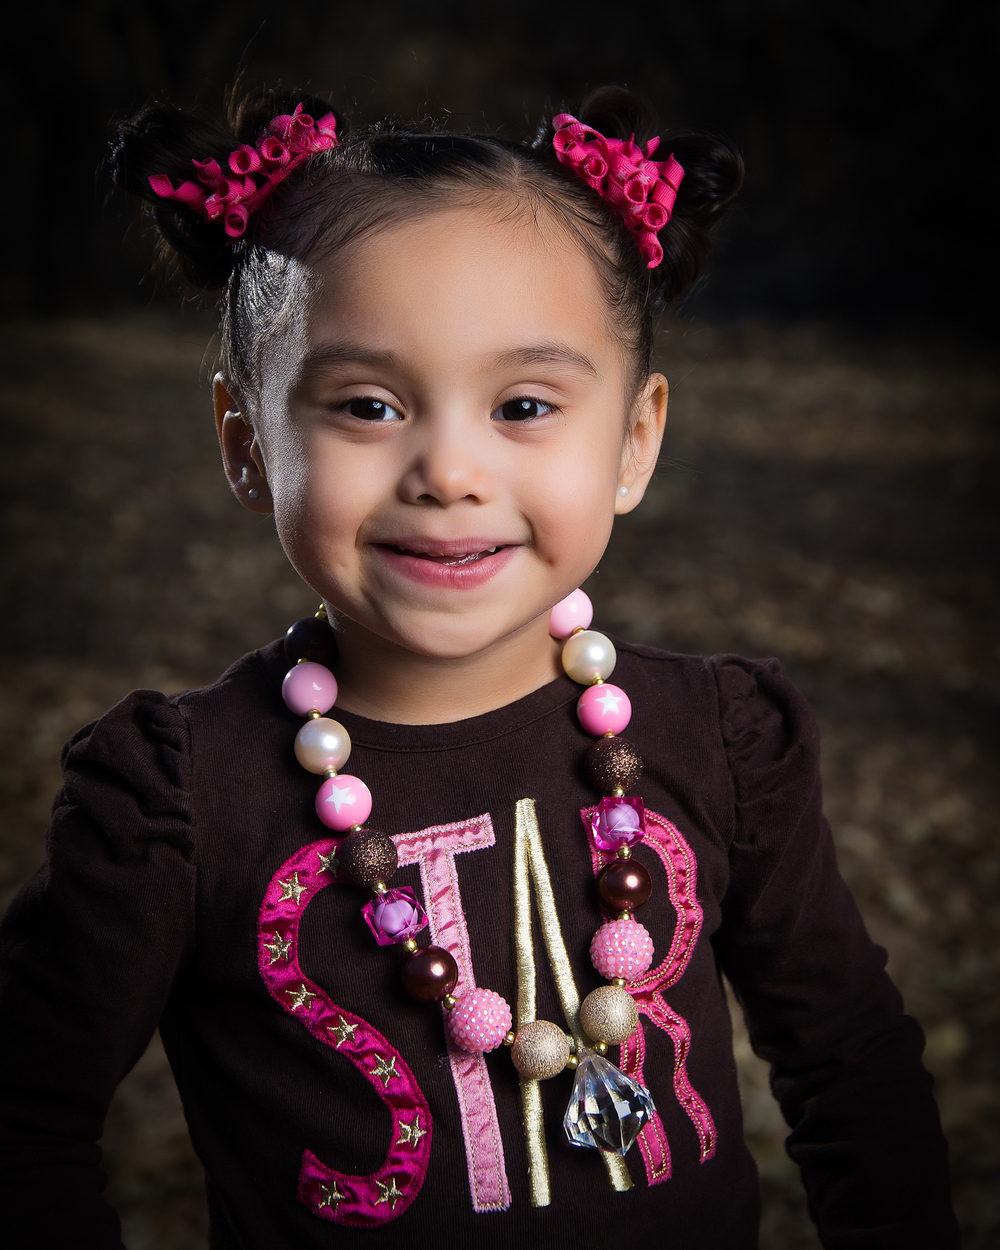 Nick_Cardona_Photography_Gilbert_AZ_Portrait_Photographer-9.jpg